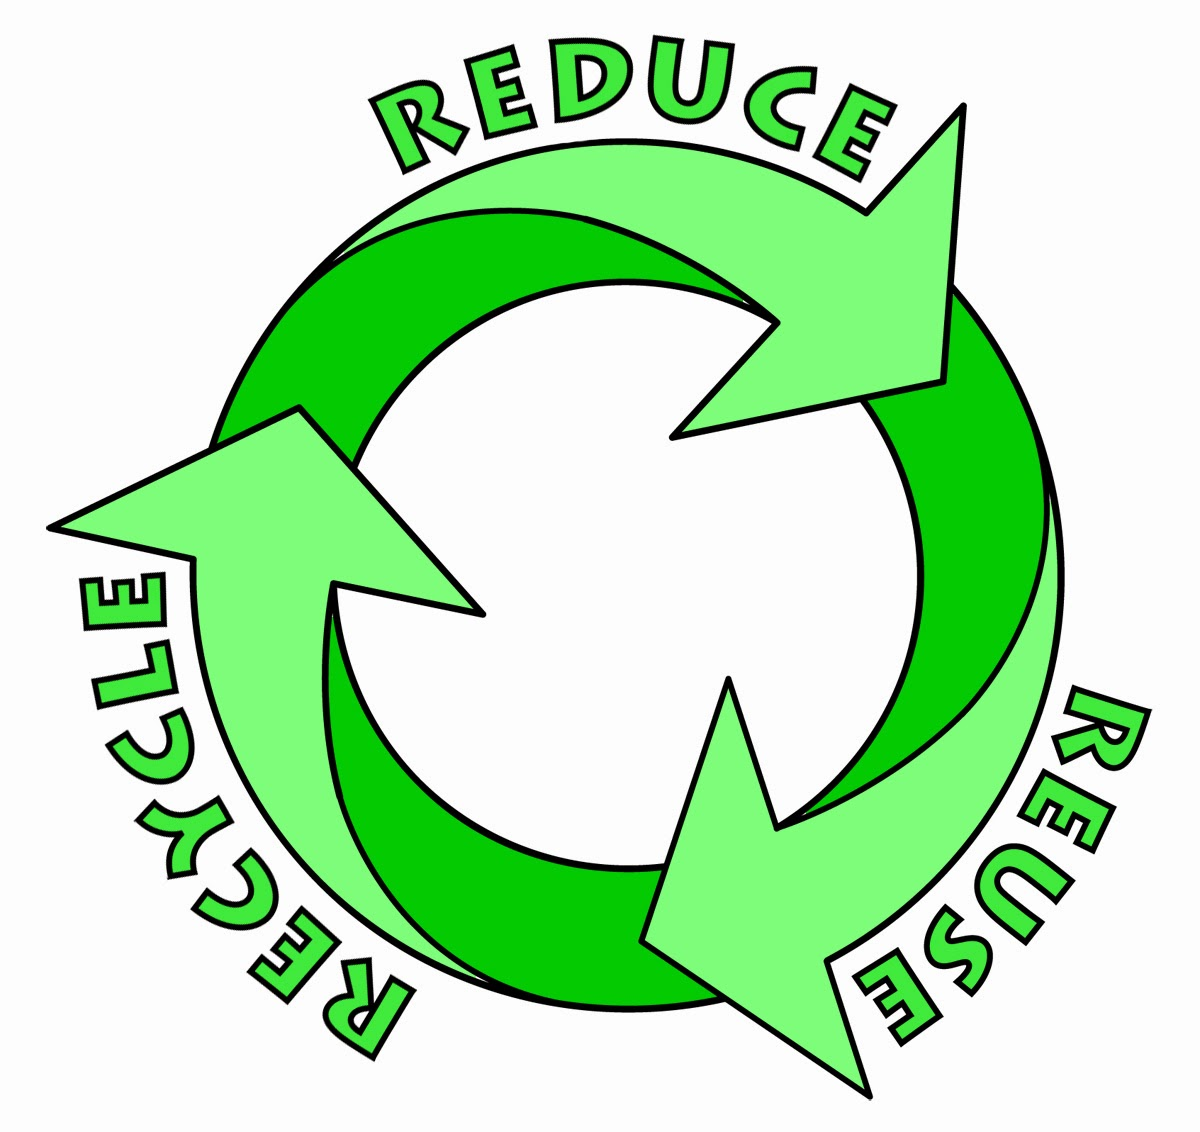 Recycle reuse reduce essay questions answers